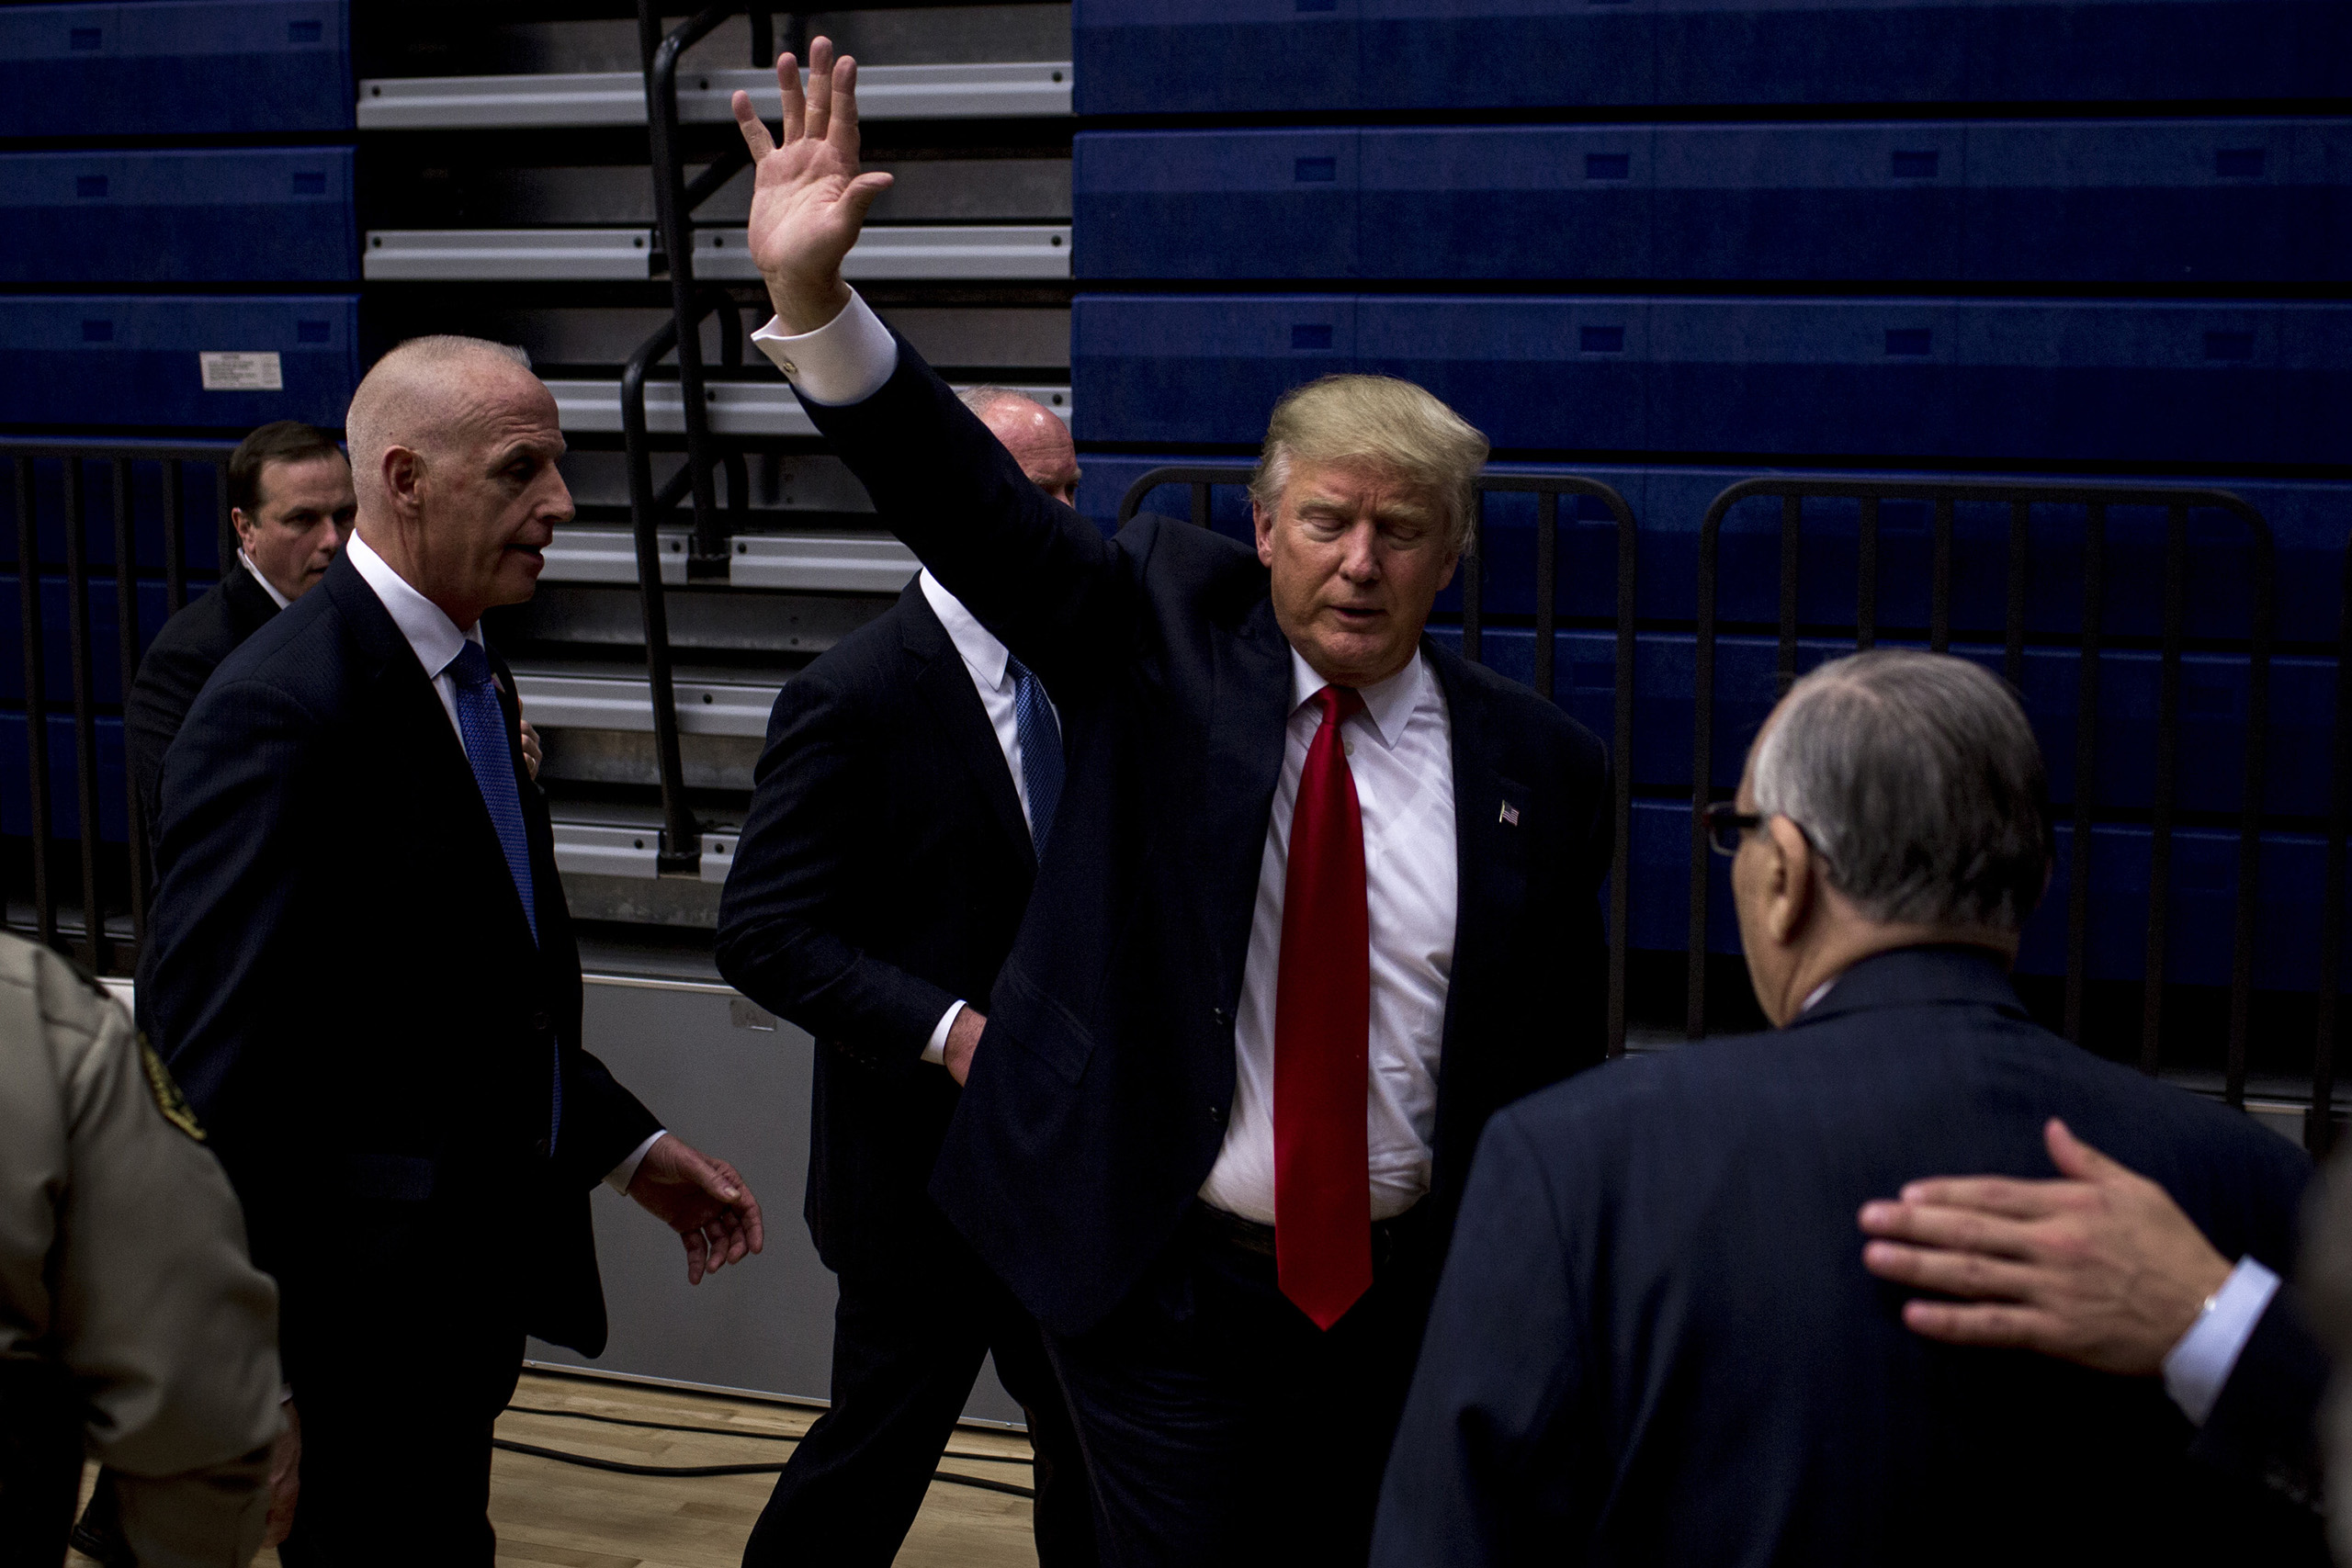 Donald Trump waves to supporters as he leaves  from a rally at Marshalltown Community School District - Roundhouse Gymnasium on Jan. 26, 2016.